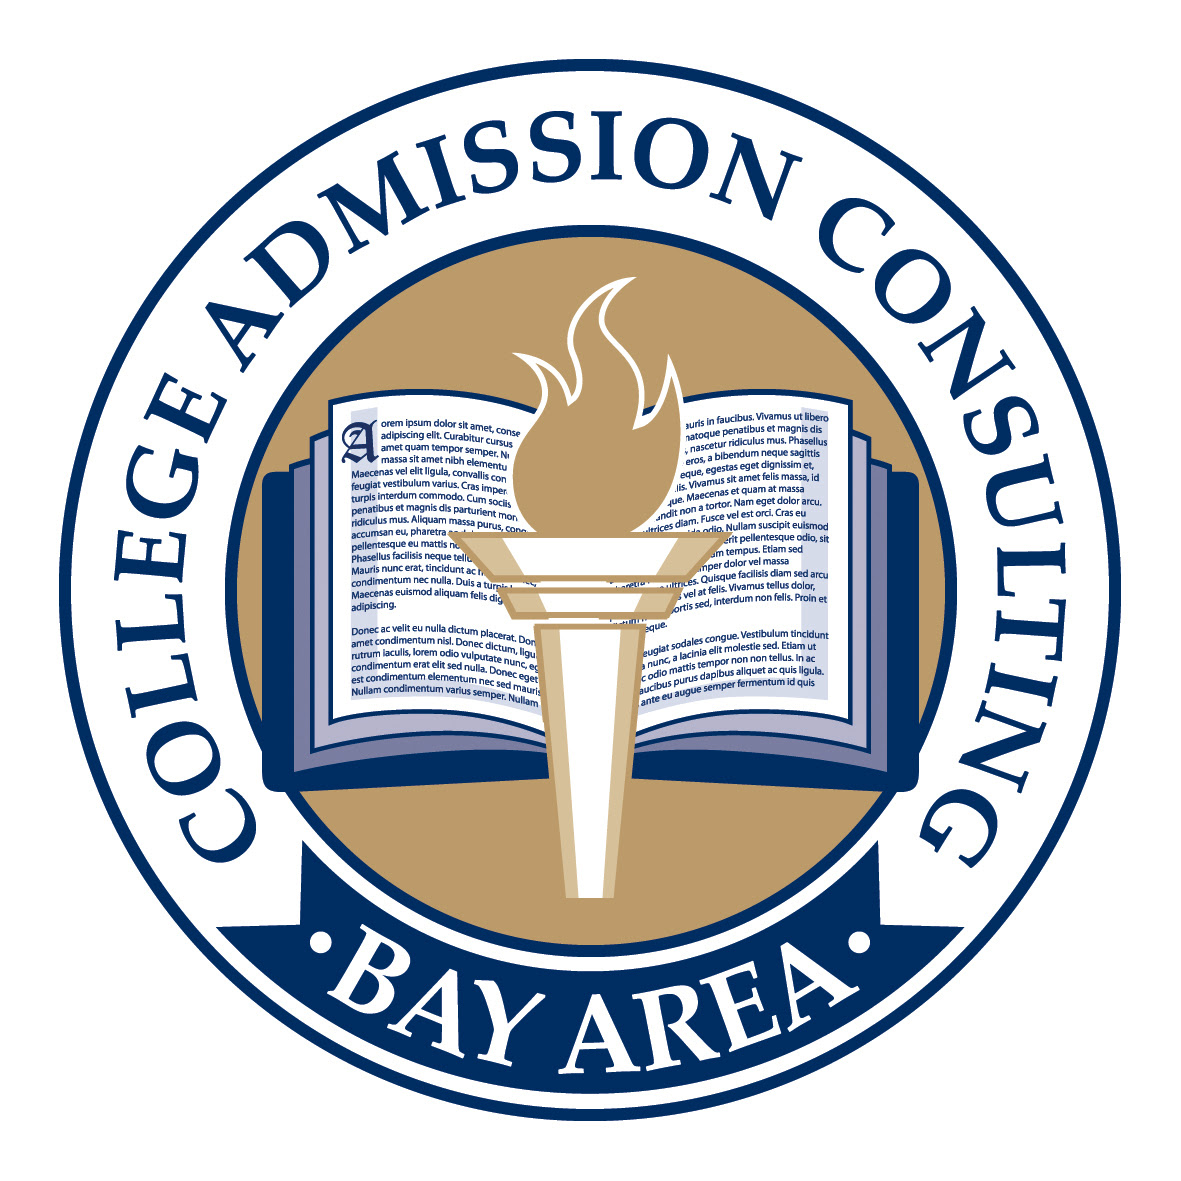 Bay Area College Counselor To Offer Course Scheduling